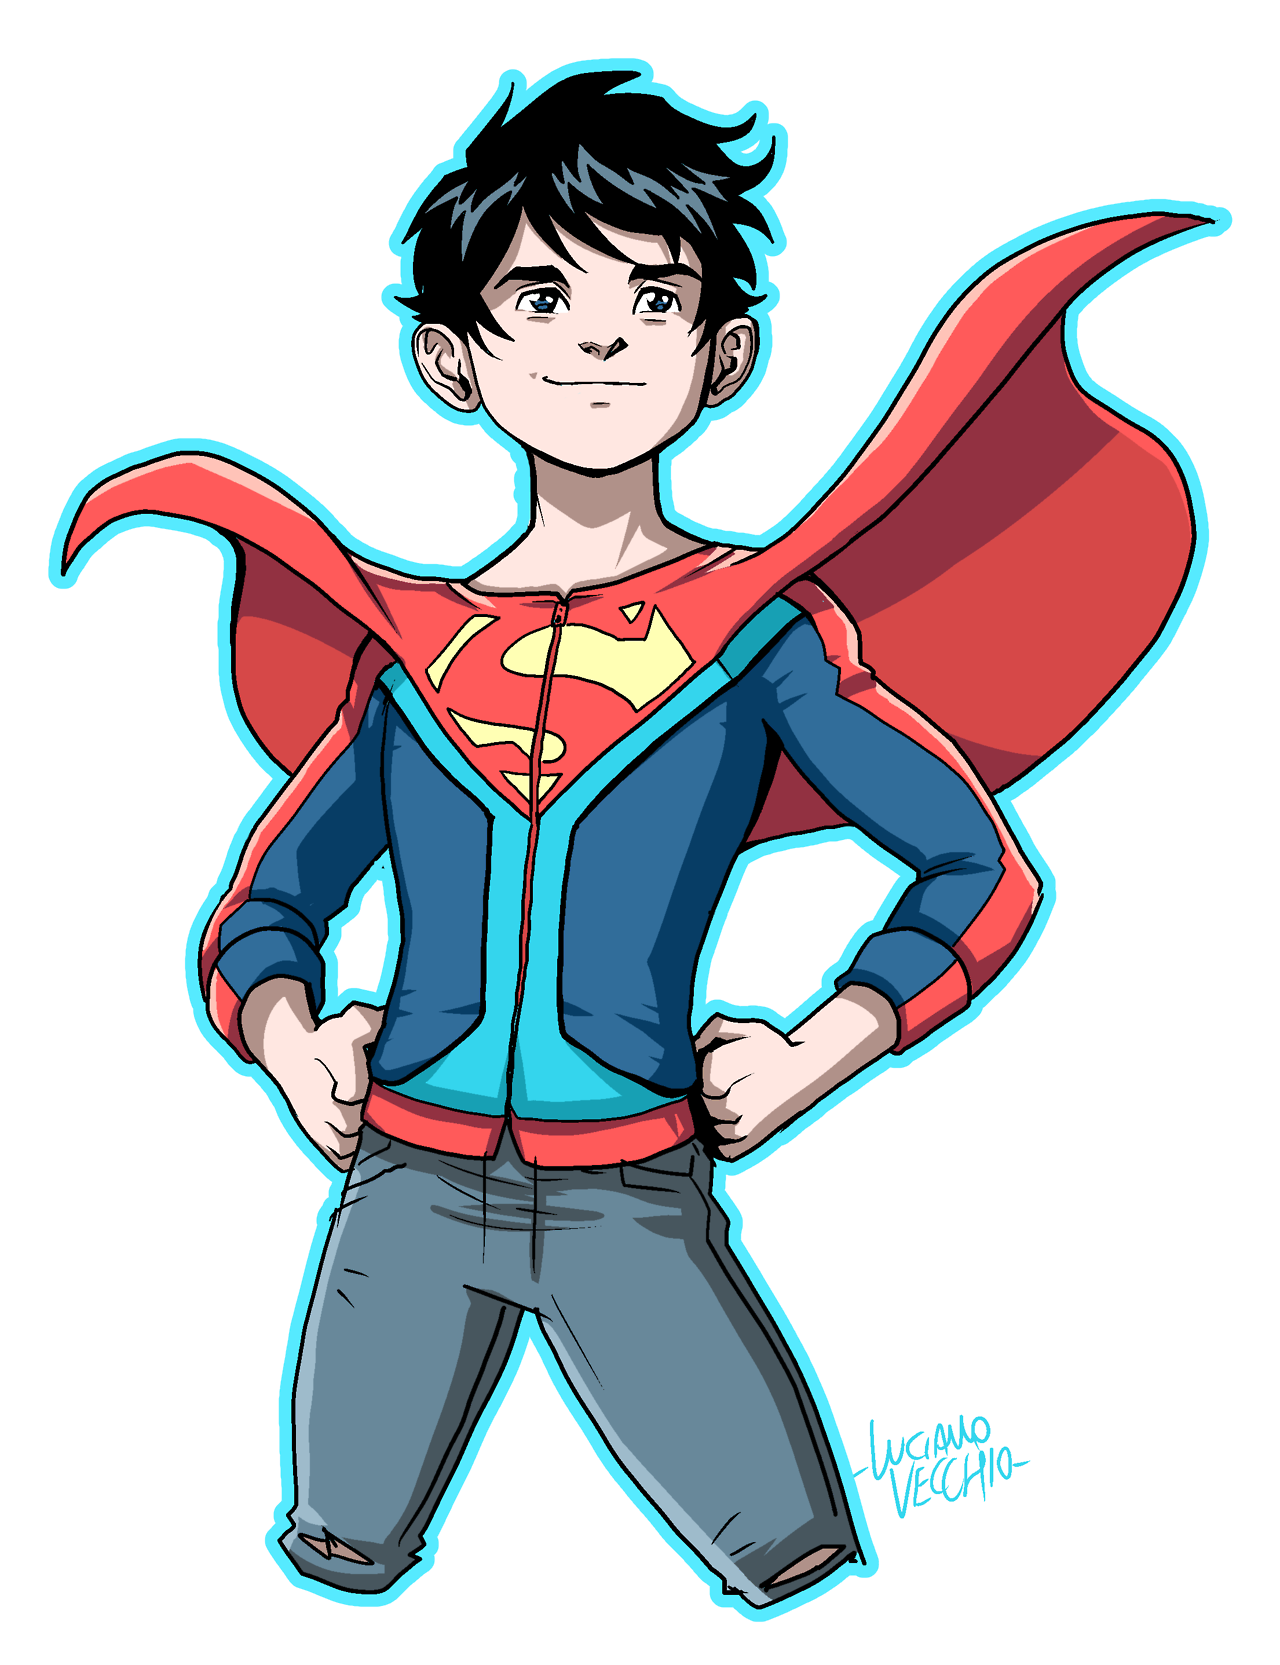 Brave clipart superboy. Rebirth luciano vecchio superman